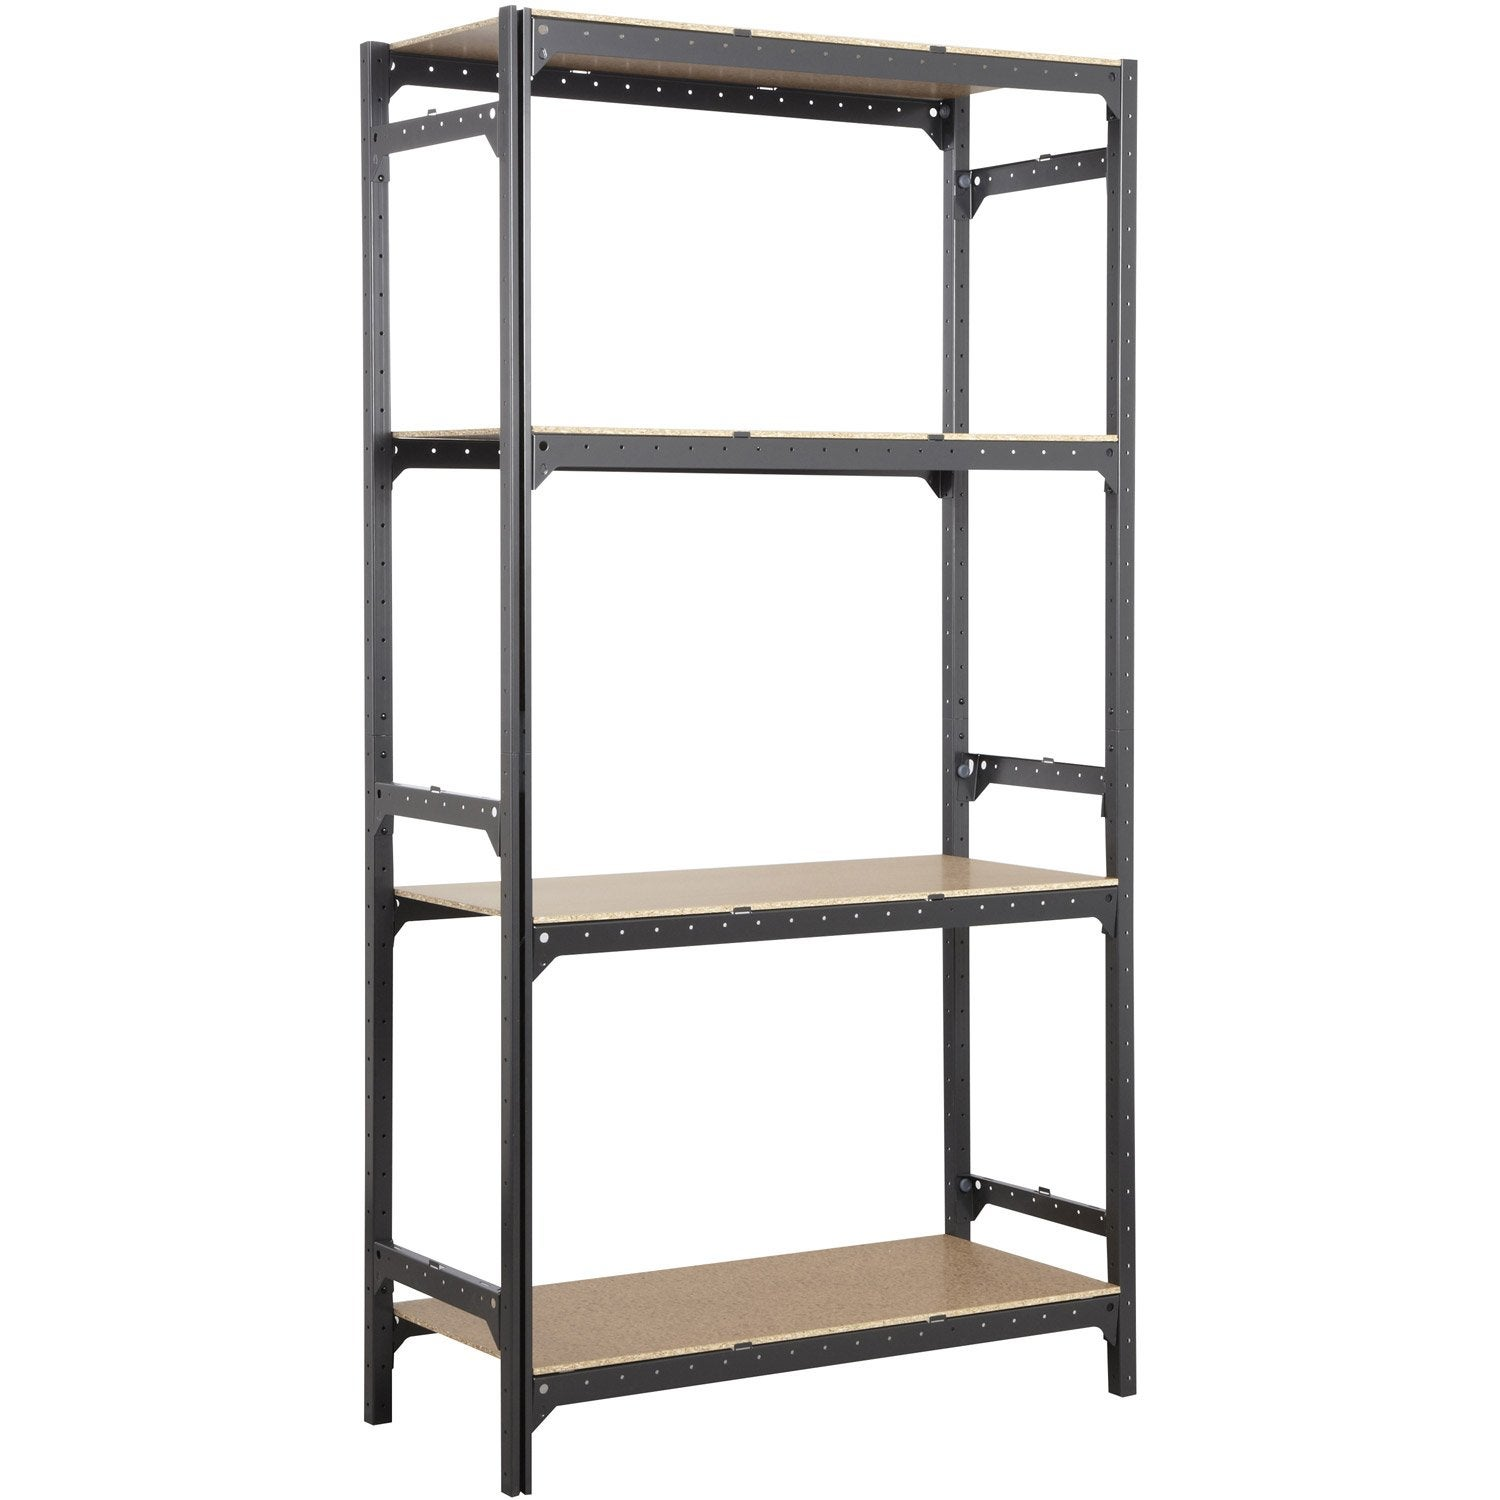 Etag re acier spaceo hubsystem 4 tablettes gris charbon - Etagere modulable leroy merlin ...